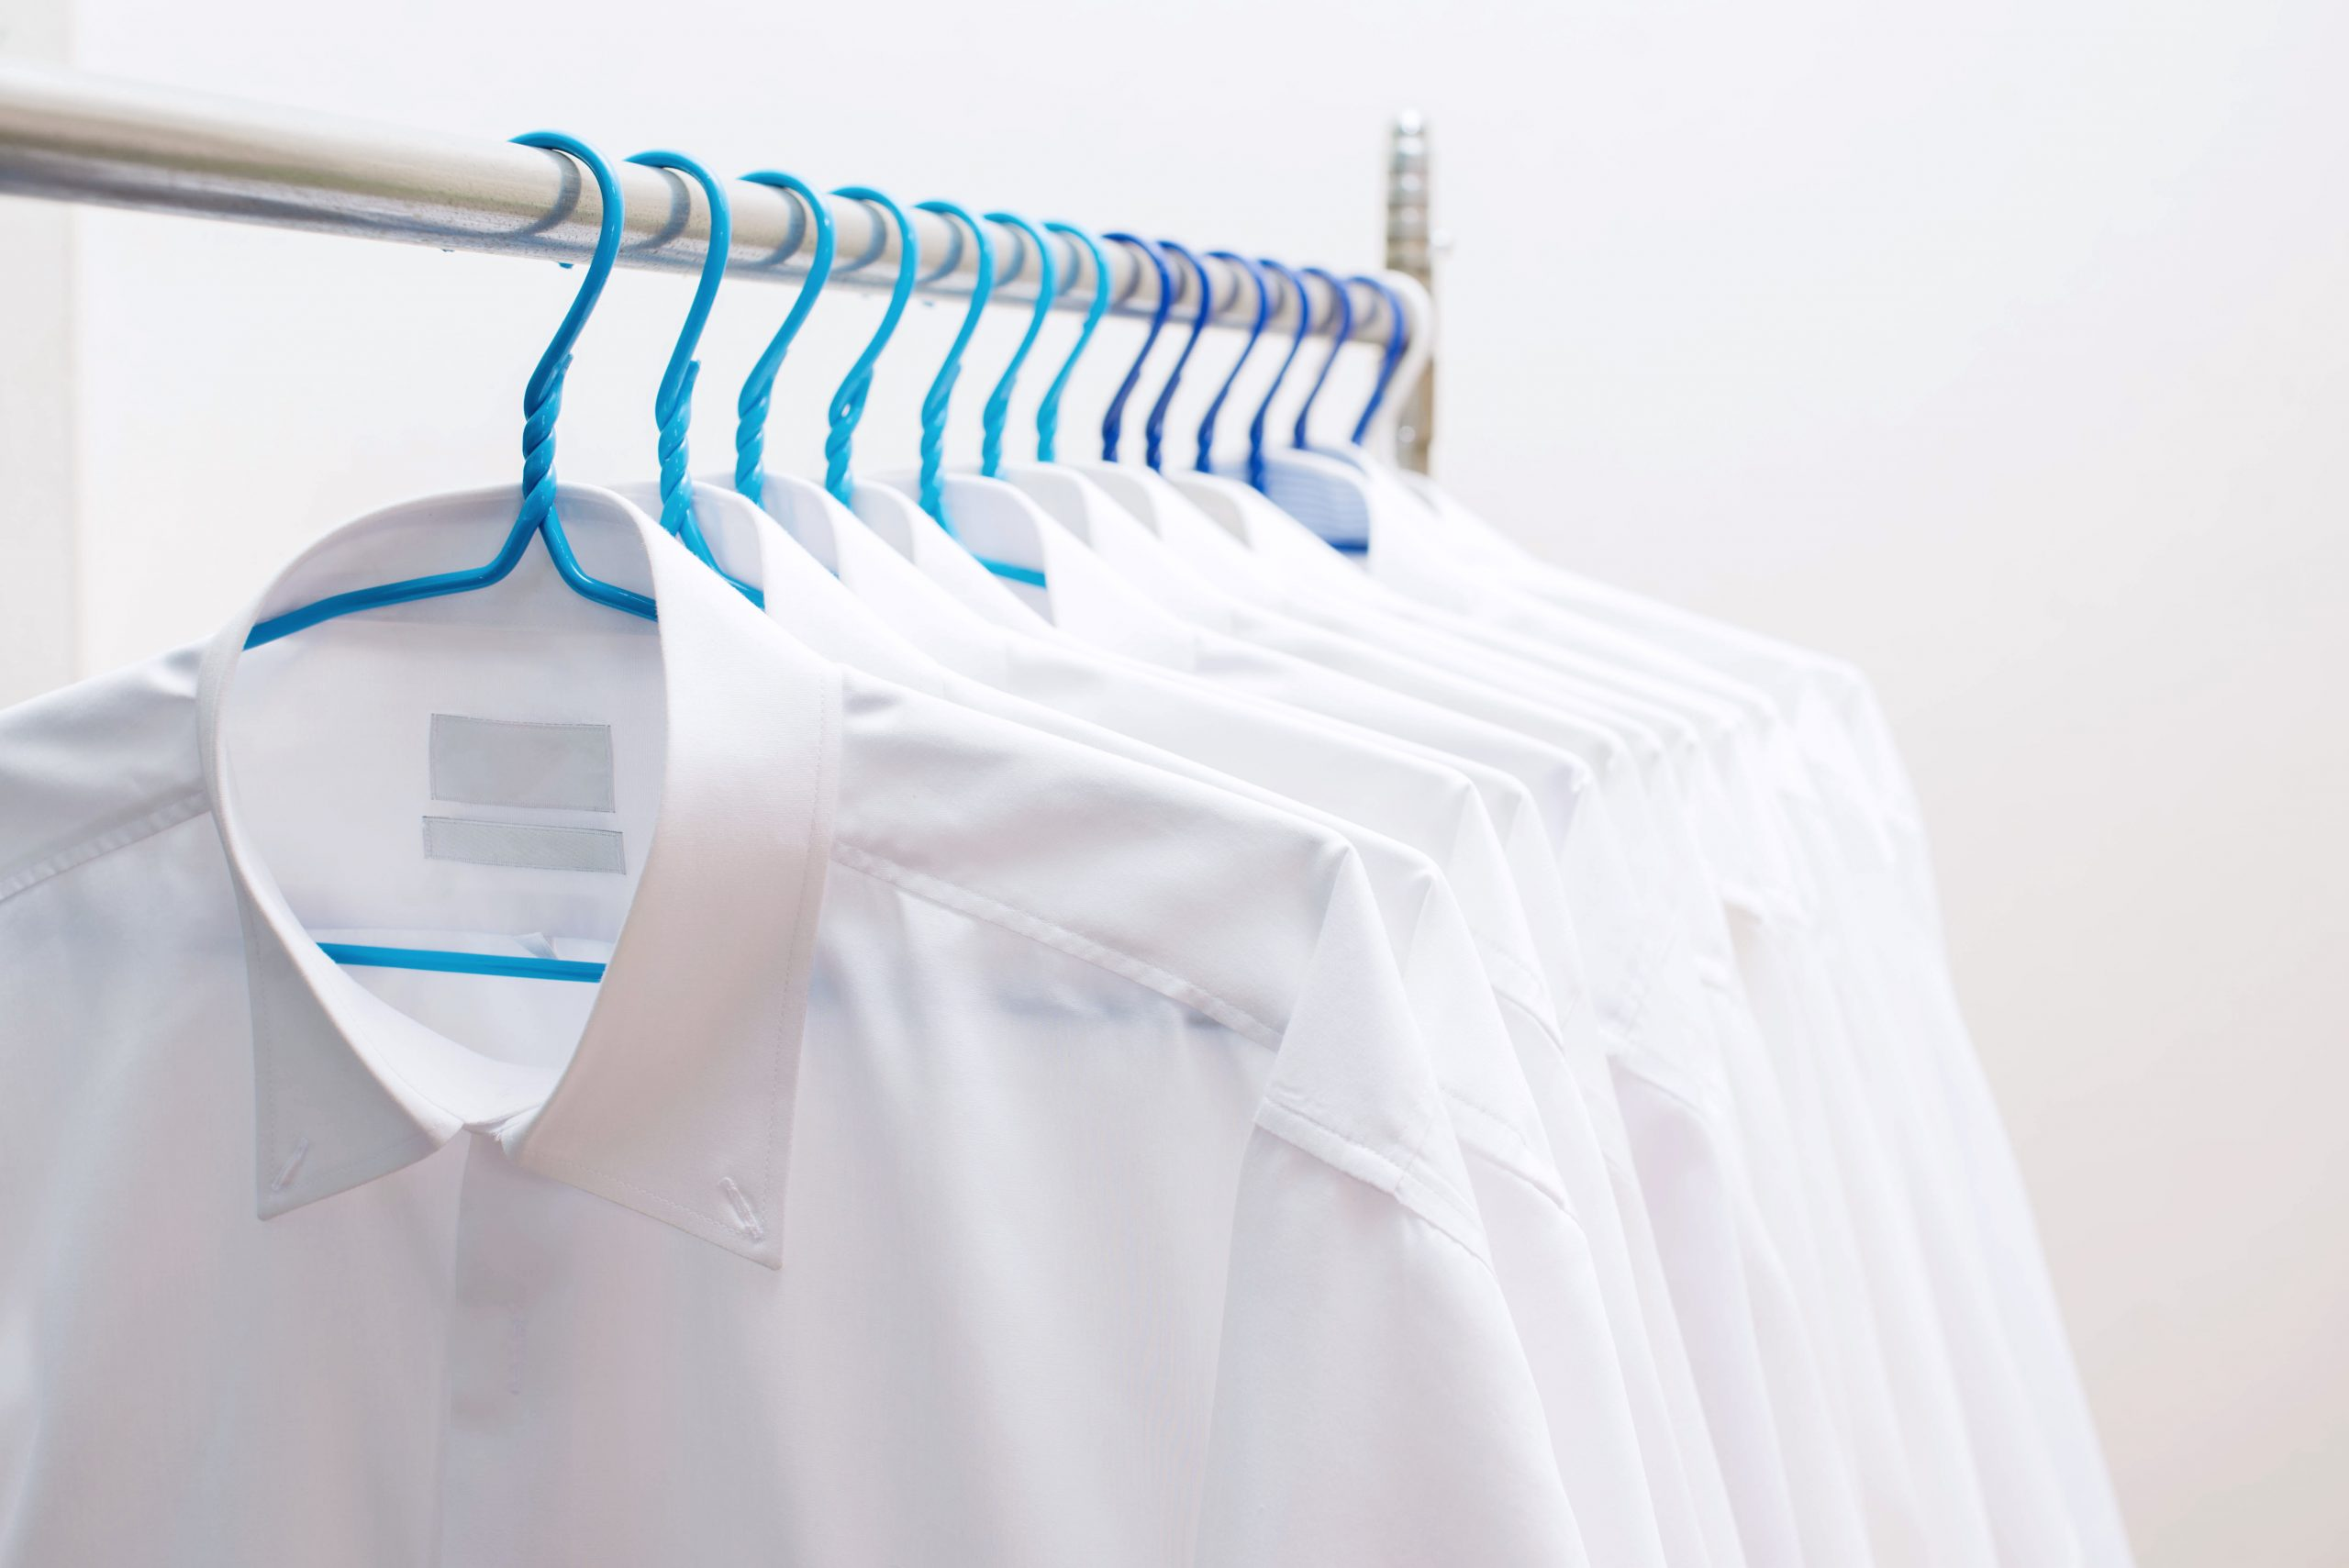 How To Clean A Dirty Shirt Collar |